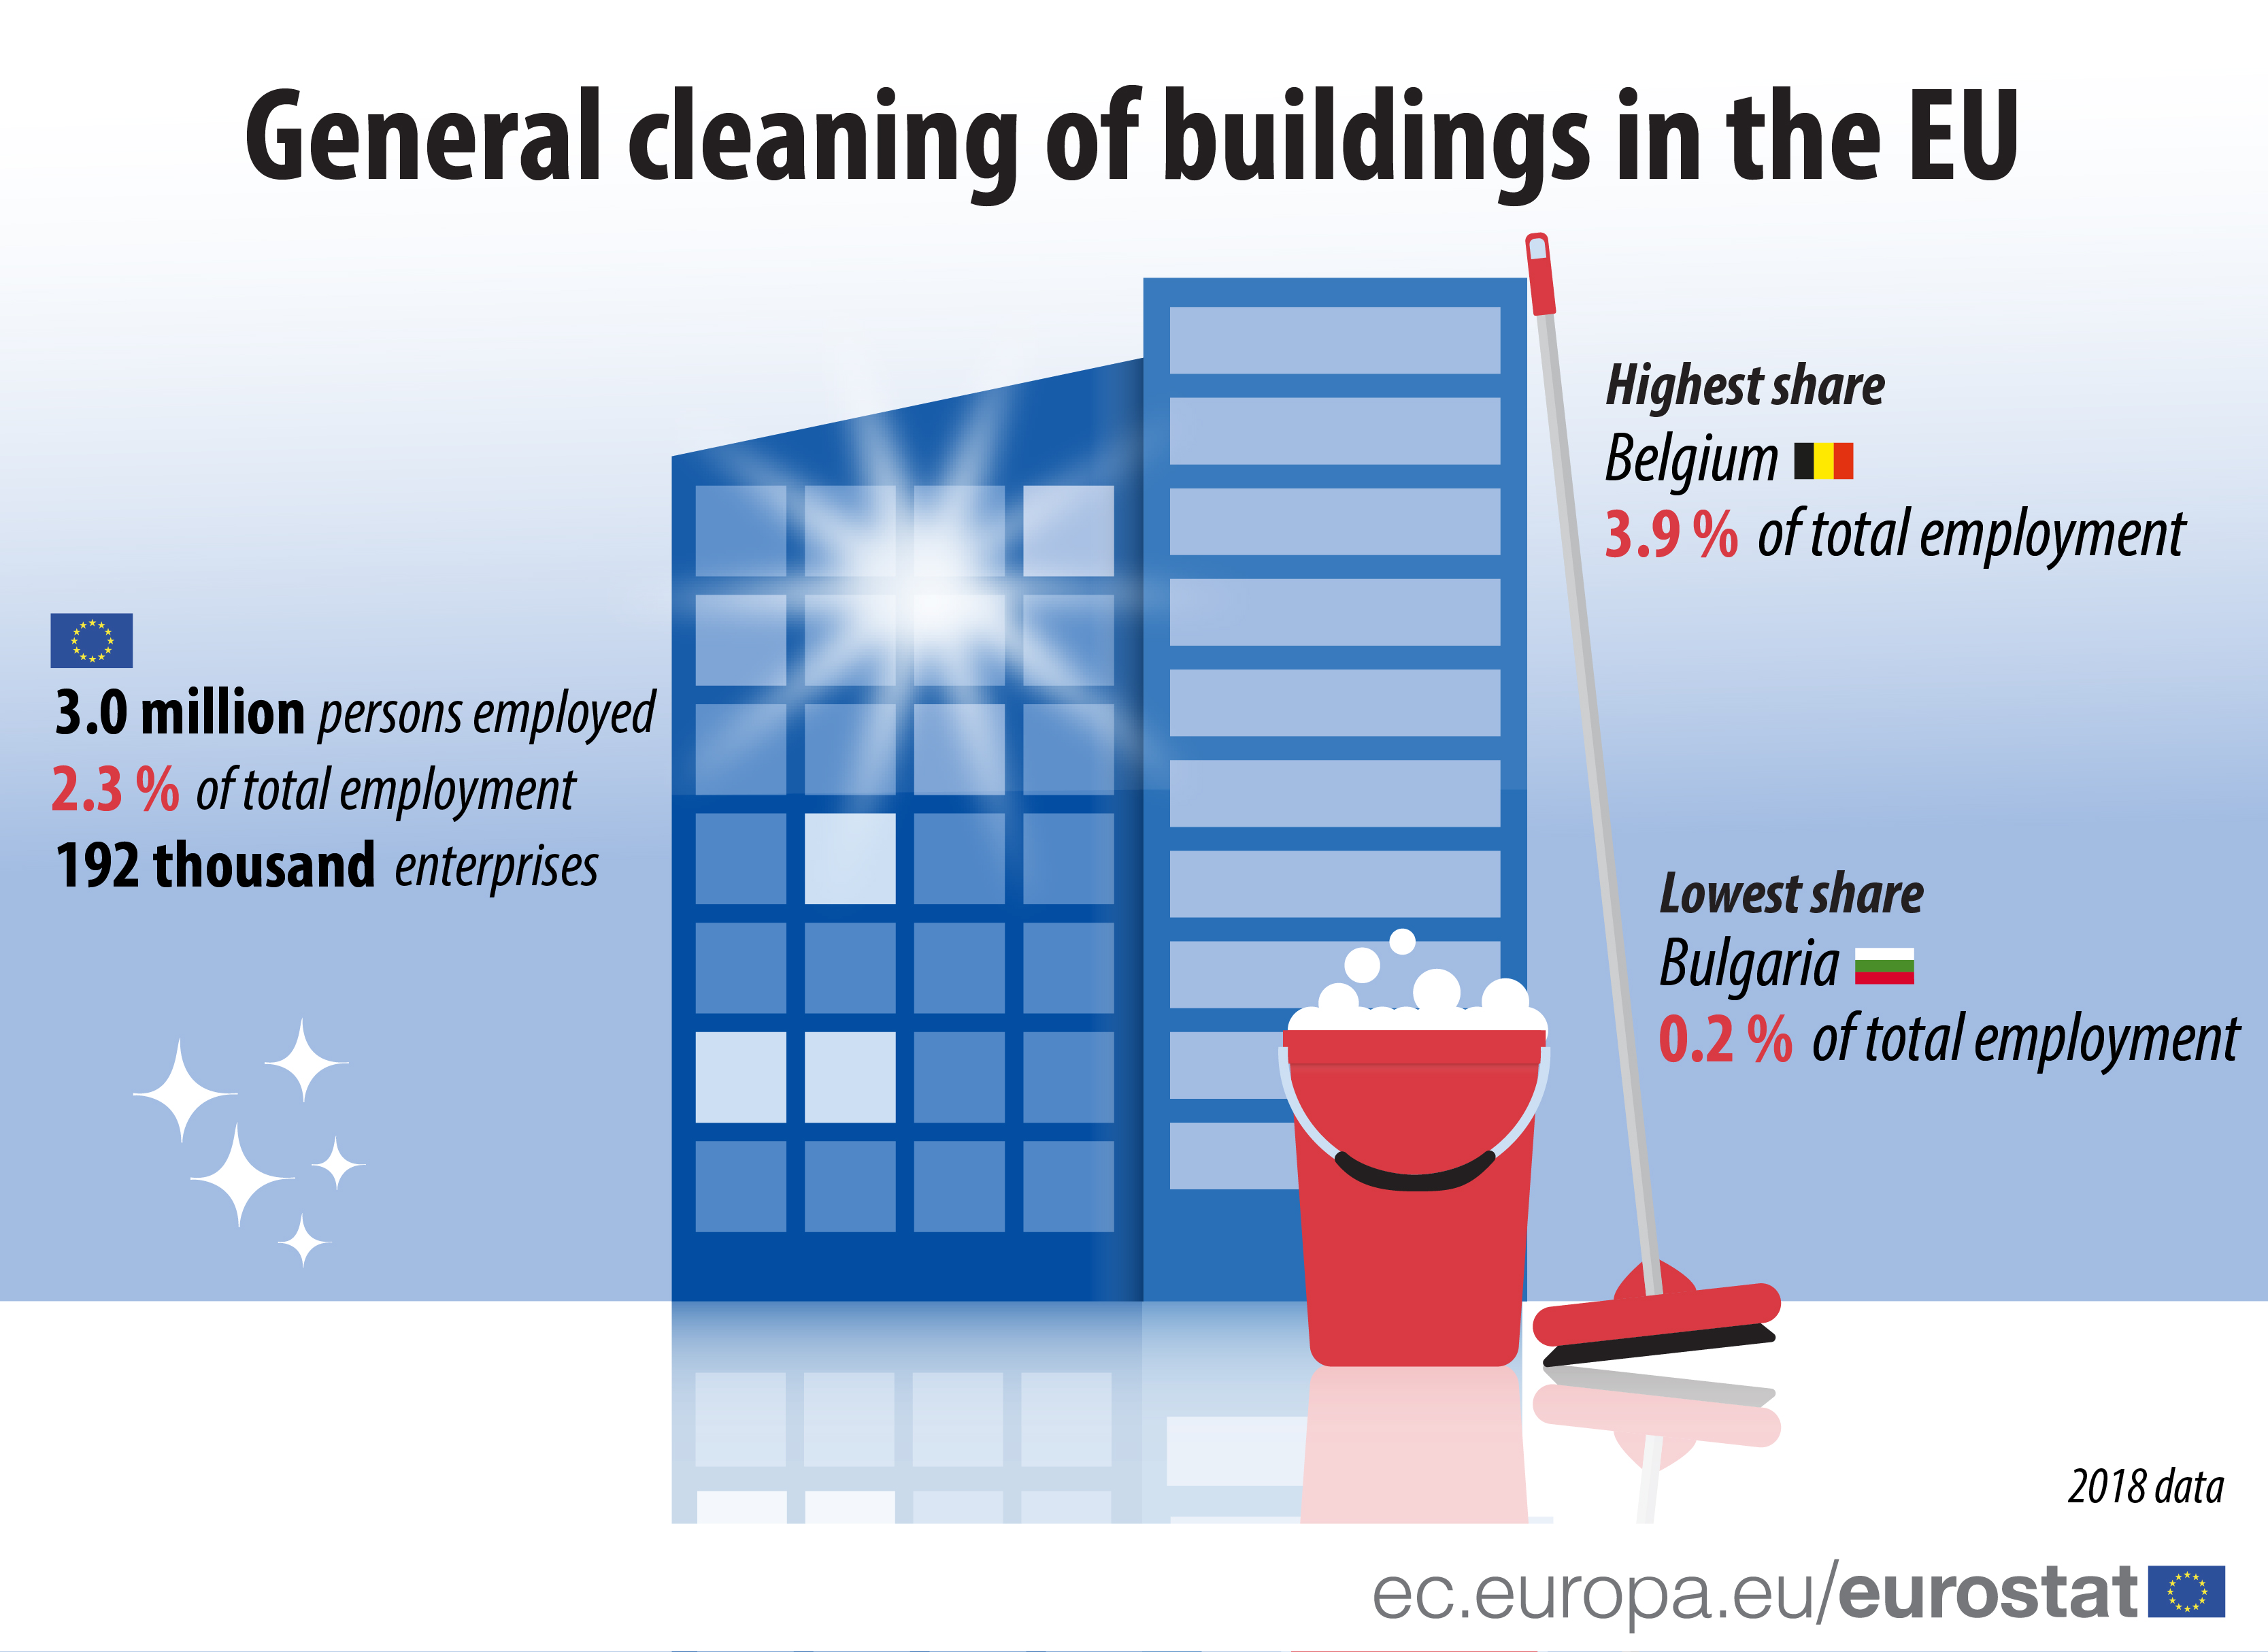 General cleaning of buildings in the EU, 2018